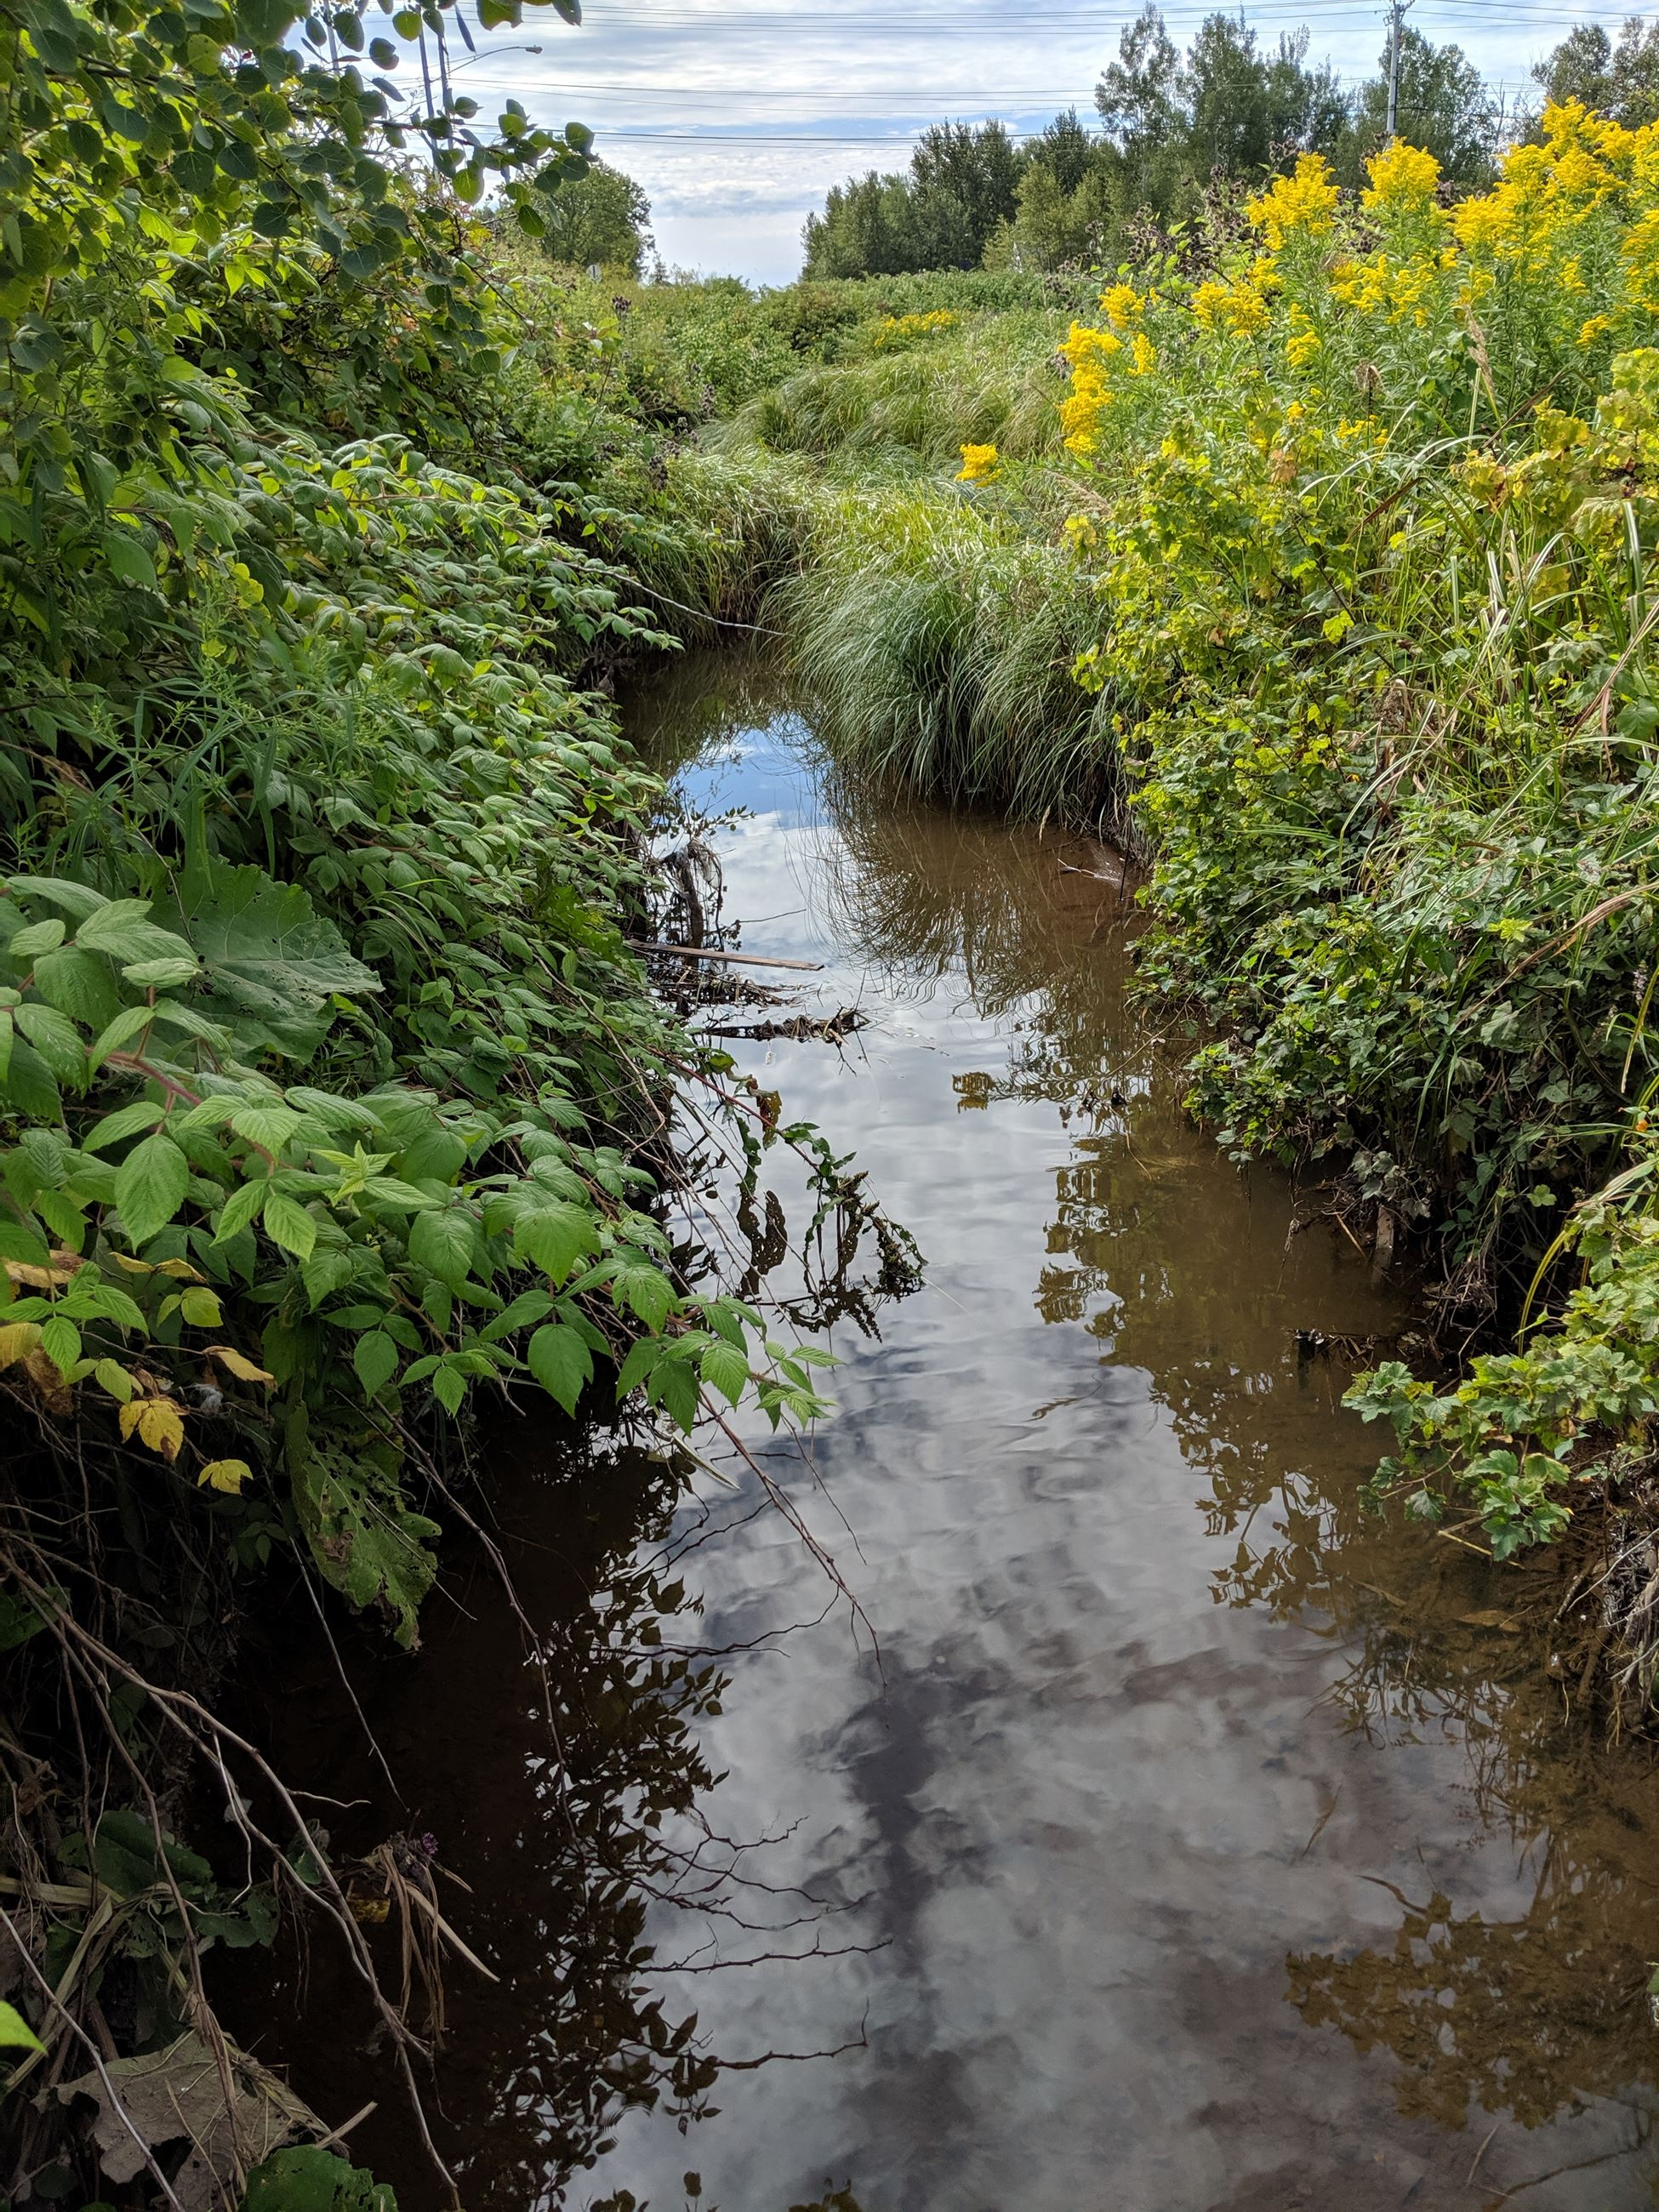 View of Faxon Creek, a small creek with tall, green healthy plants growing along stream. Creek is clear, but still a little brown.